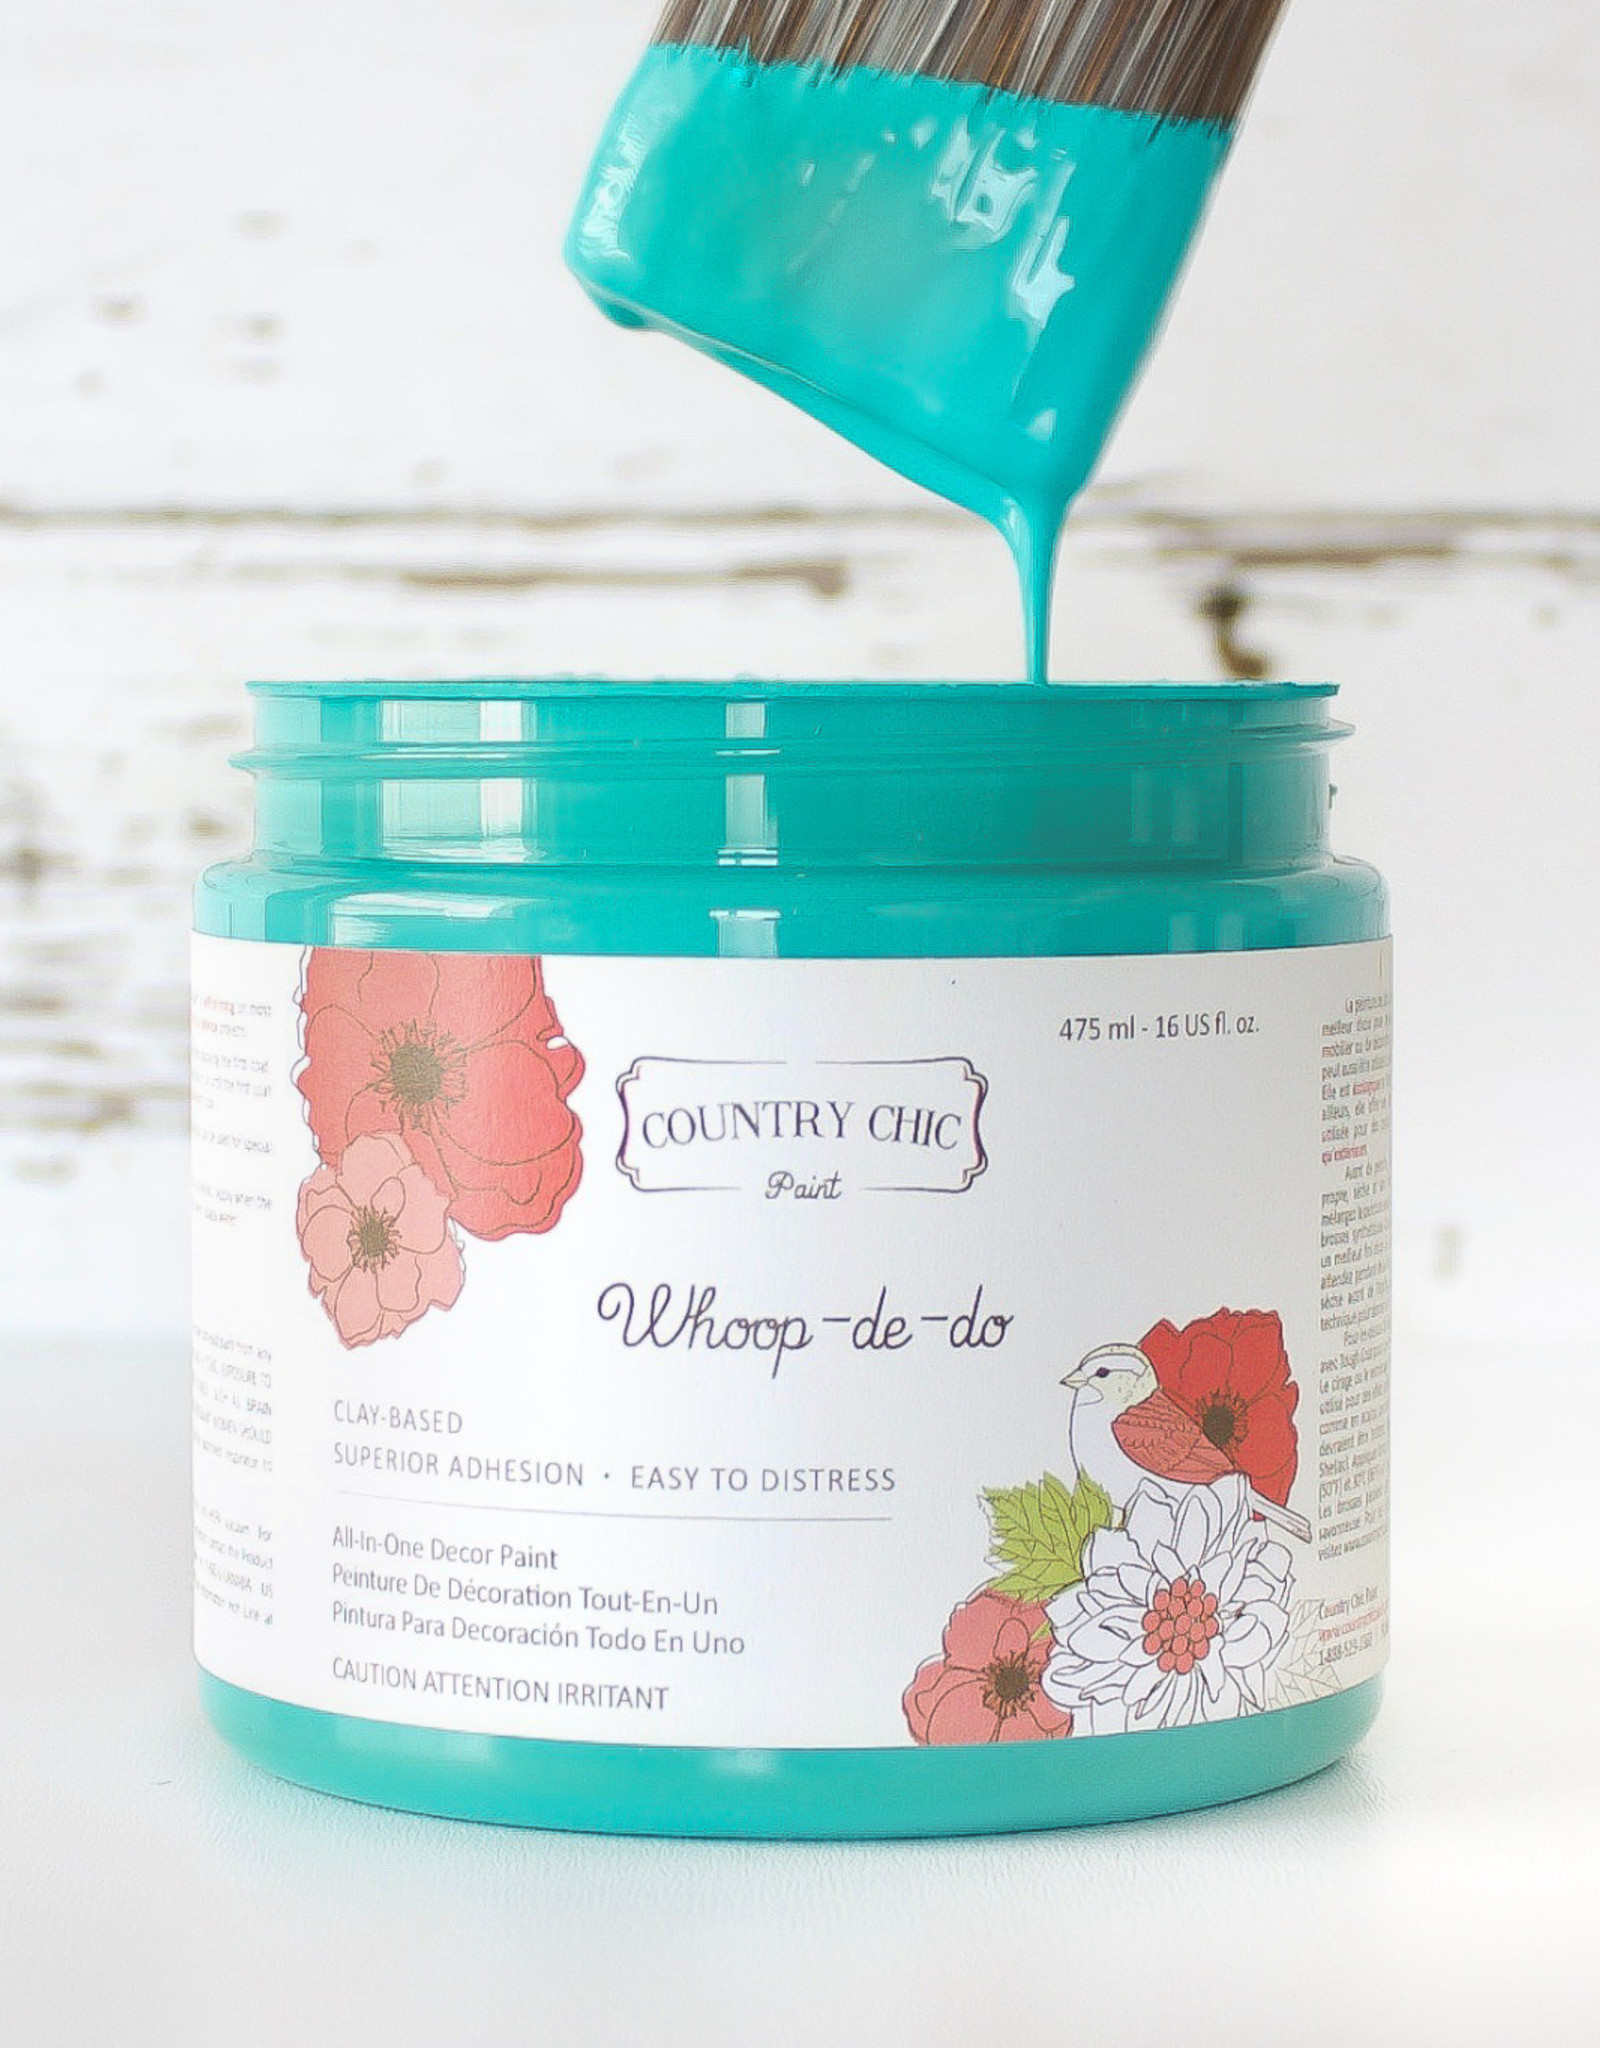 Country Chic Country Chic Paint Pint - 16oz Whoop-de-do